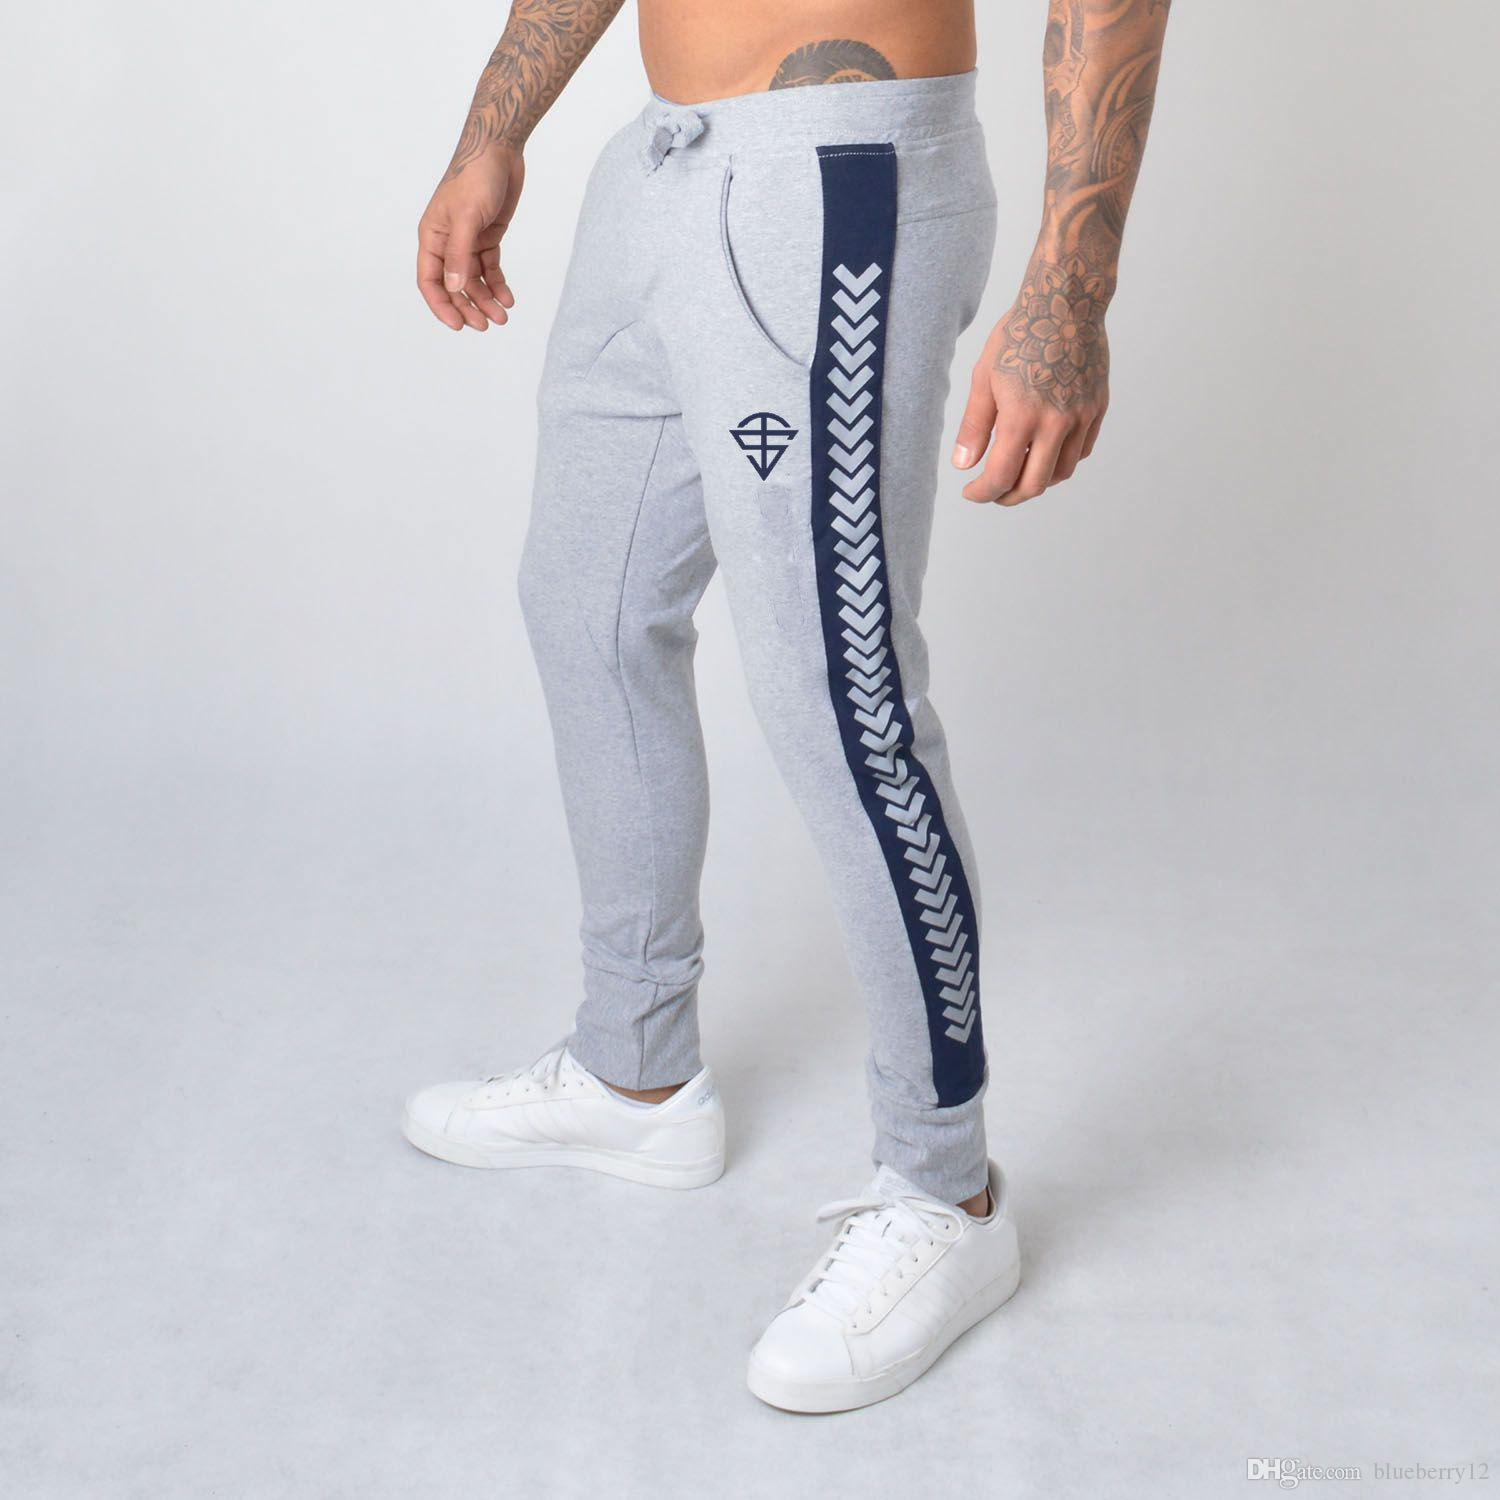 Mens Jogger Pants Sports Gym Pants Casual Elastic Cotton Mens Fitness Skinny Sweatpants Trousers Jogger Pants Outdoor with